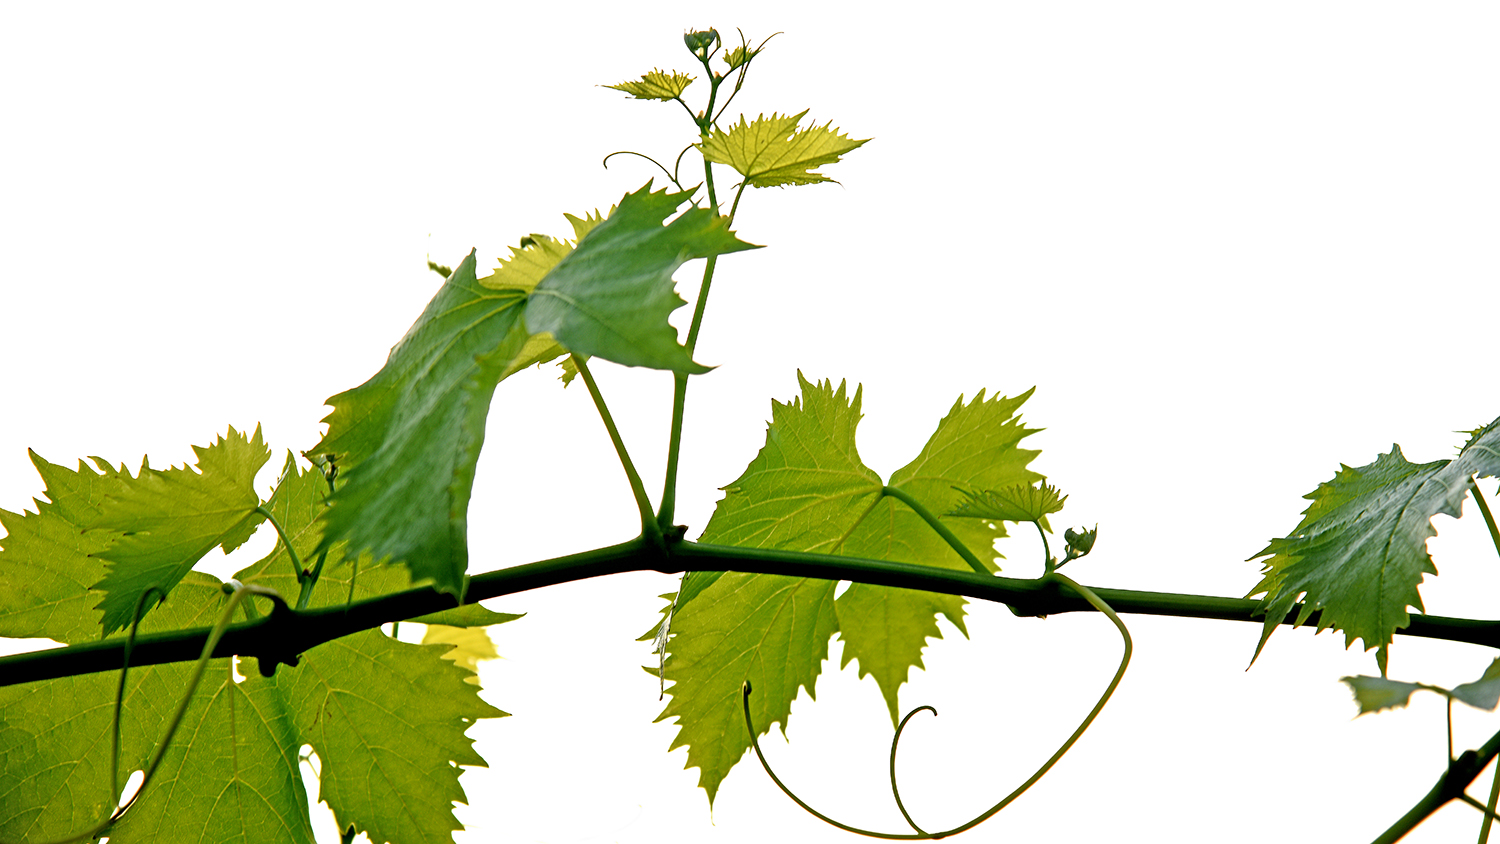 Photo of a portion of a grapevine